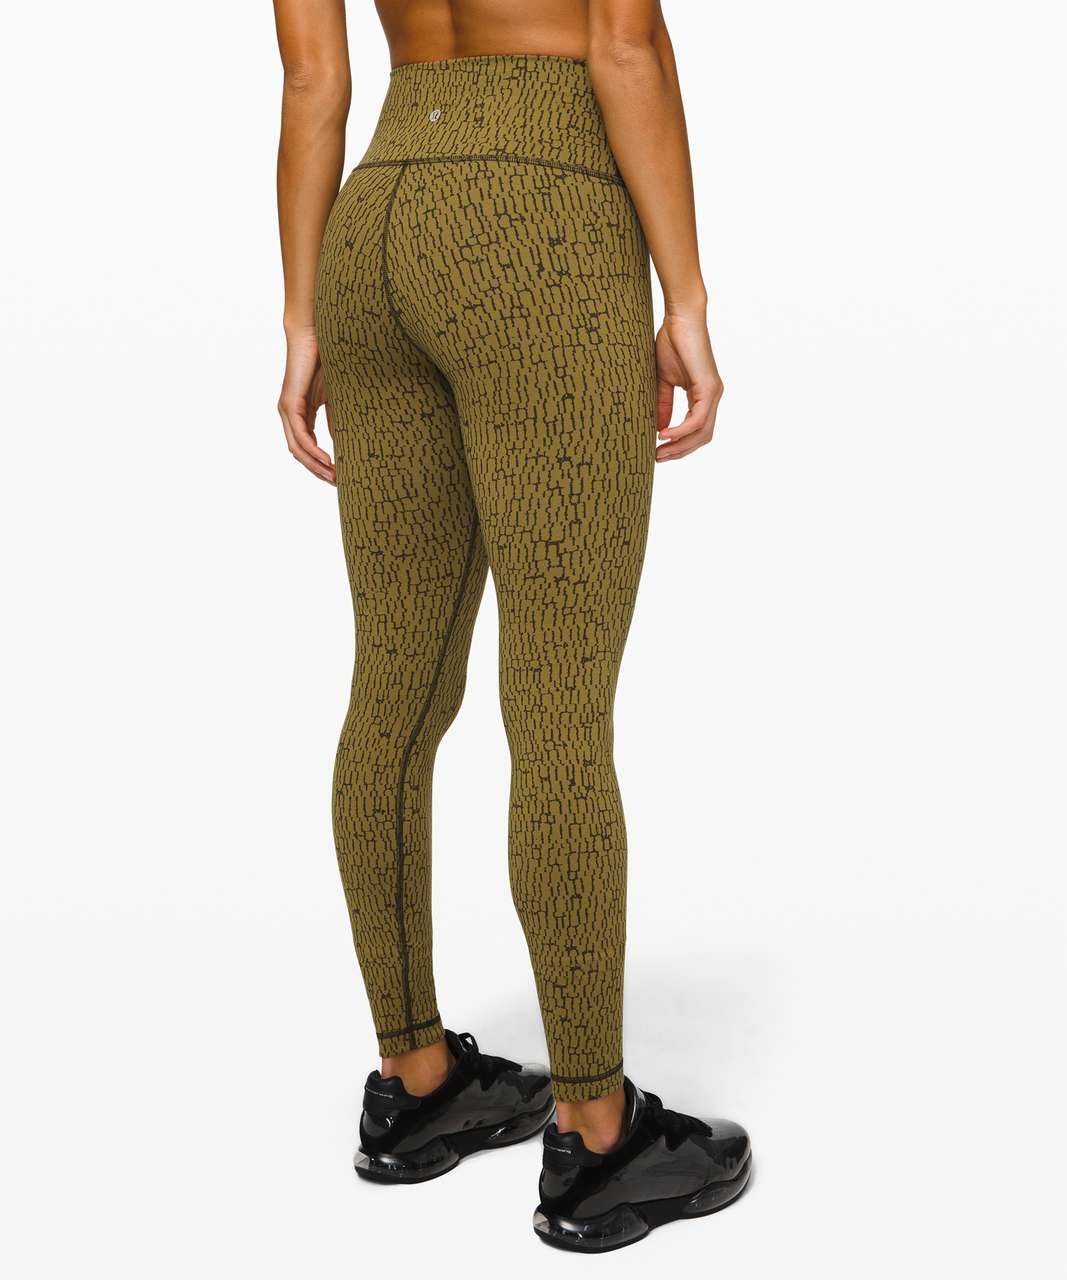 "Lululemon Wunder Under High-Rise Tight 28"" *Luxtreme - Stacked Jacquard Mossy Dark Olive"